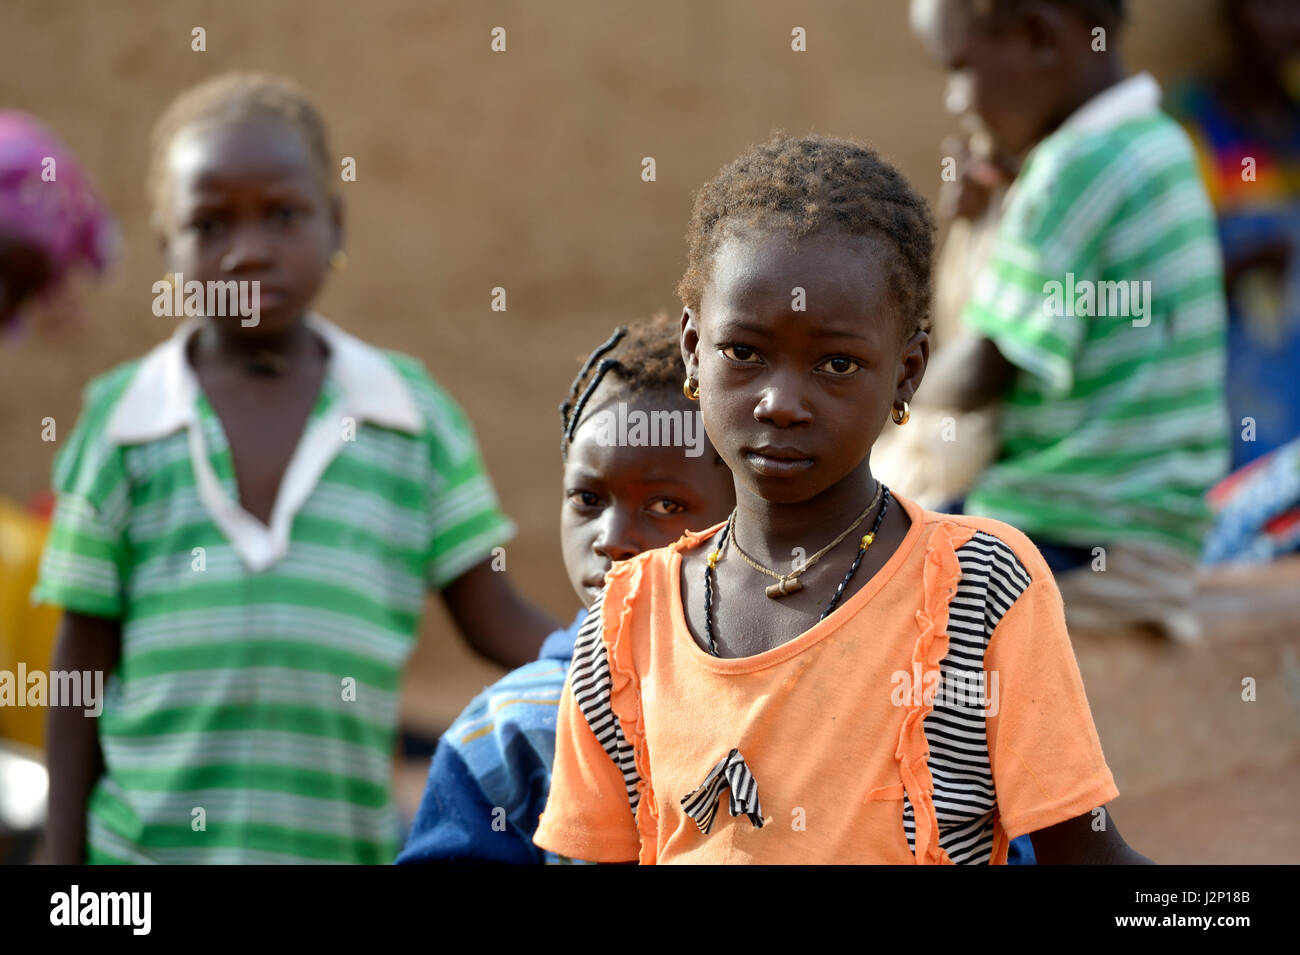 Girl with serious glance, village Koungo, Plateau Central, Burkina Faso - Stock Image